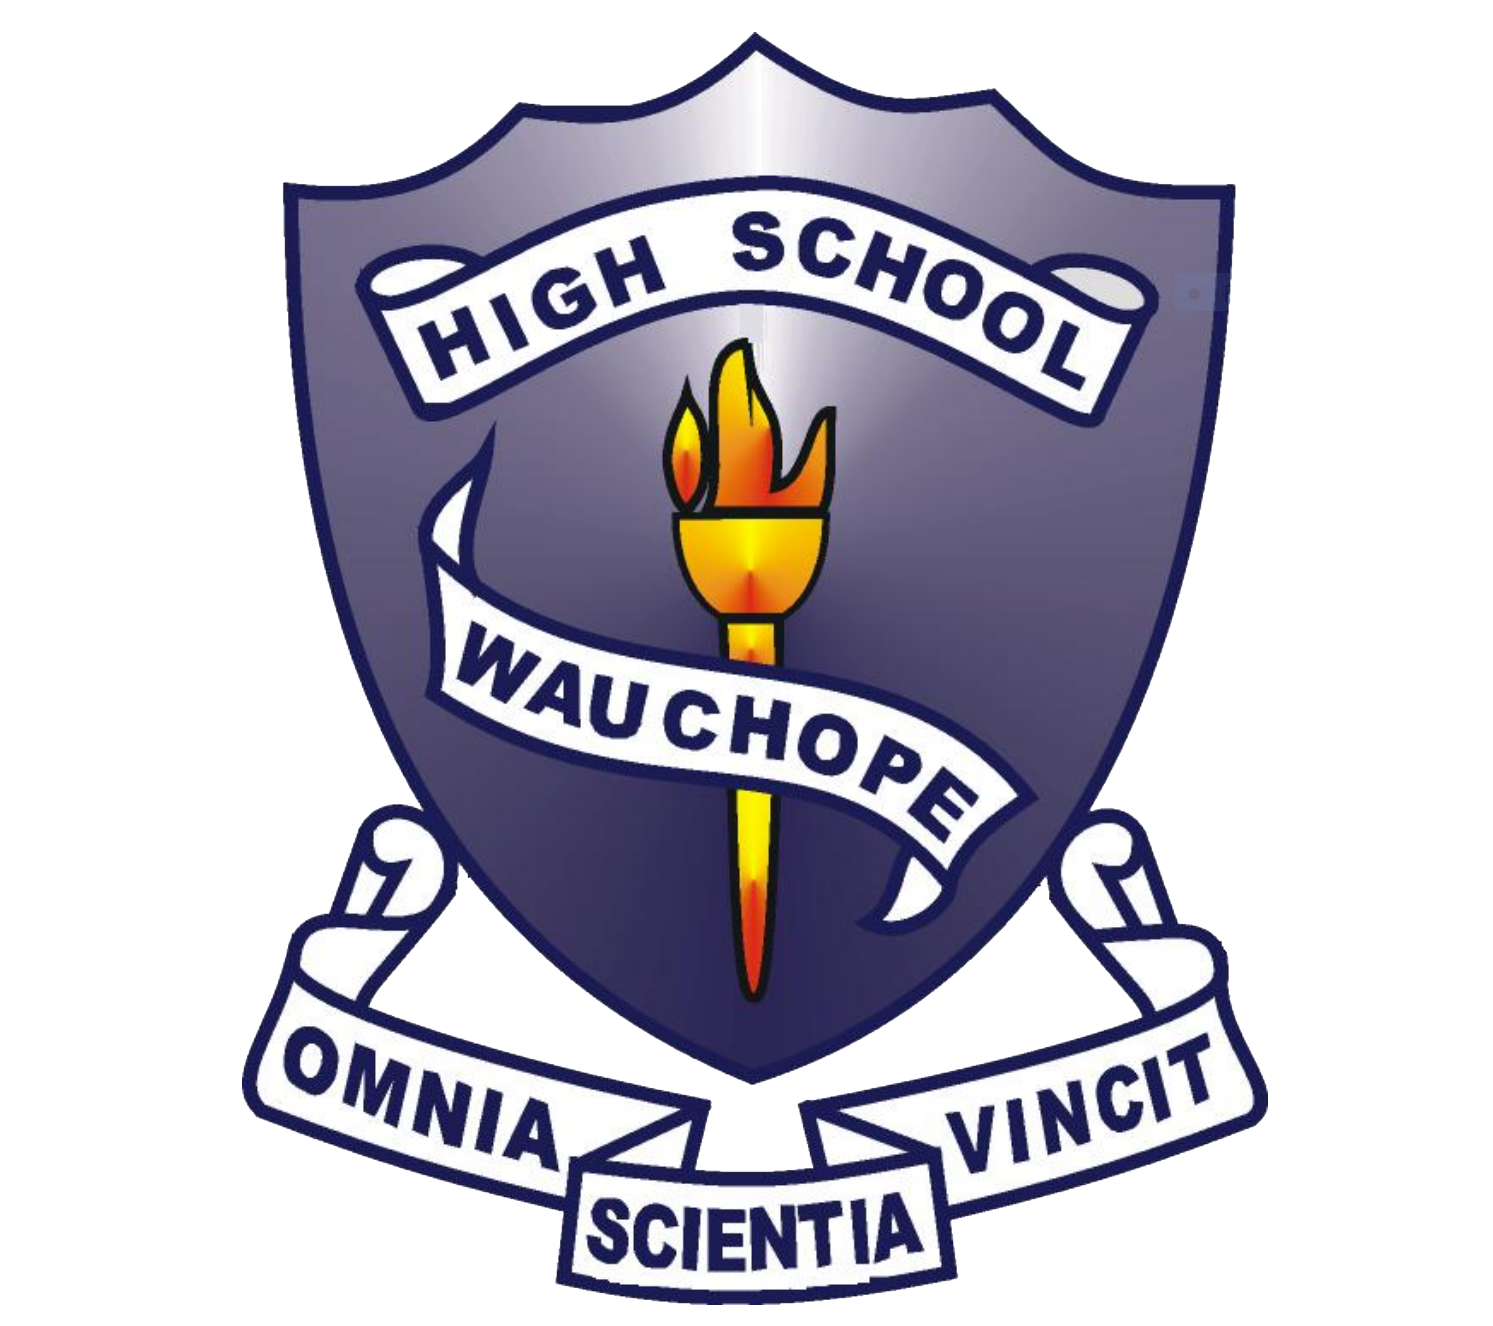 Wauchope High School logo